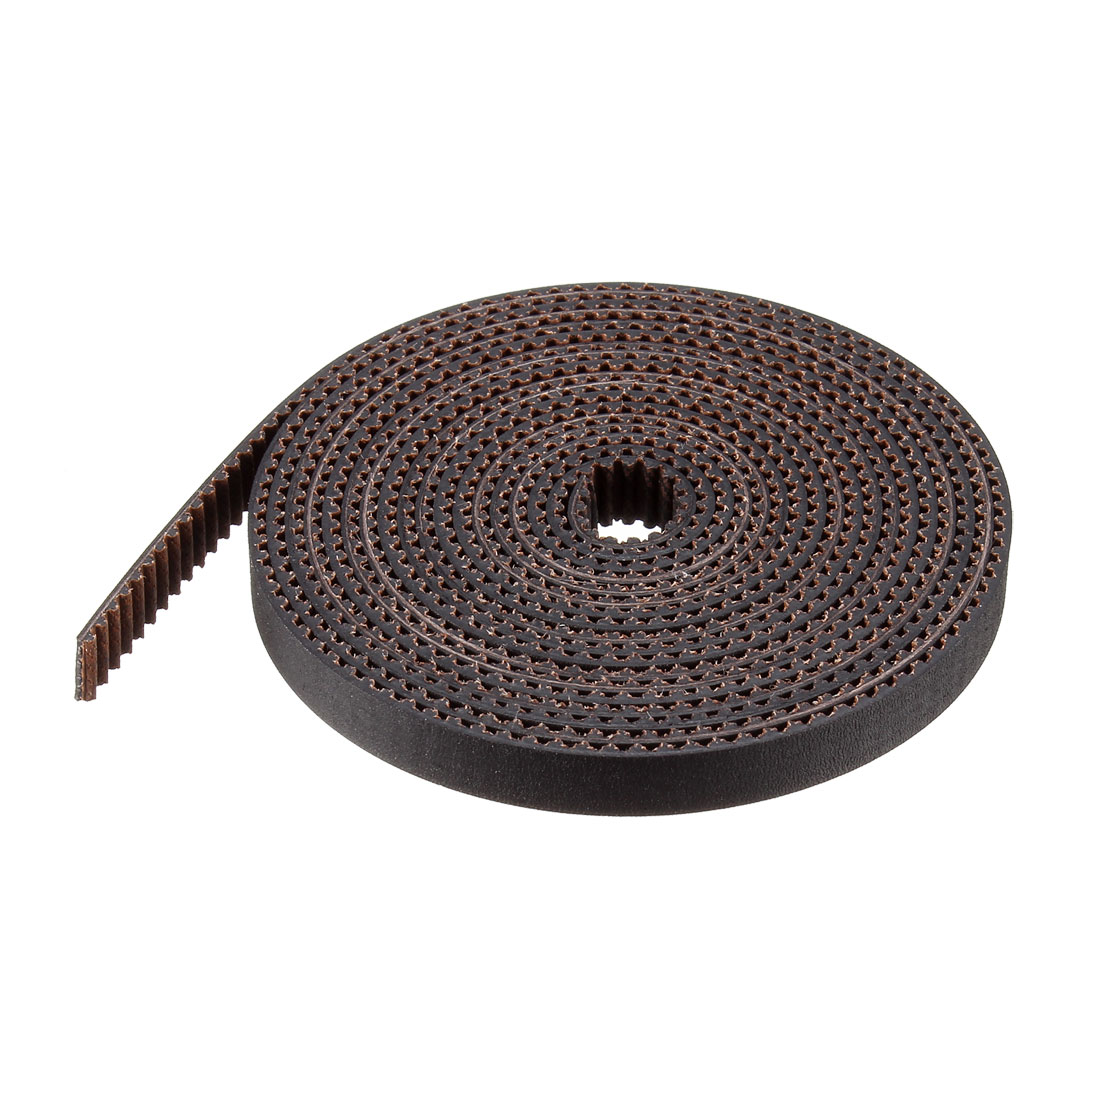 GT2 Timing Belt 2 Meter Opening Fit Synchronous Wheel for 3D Printer, Brown